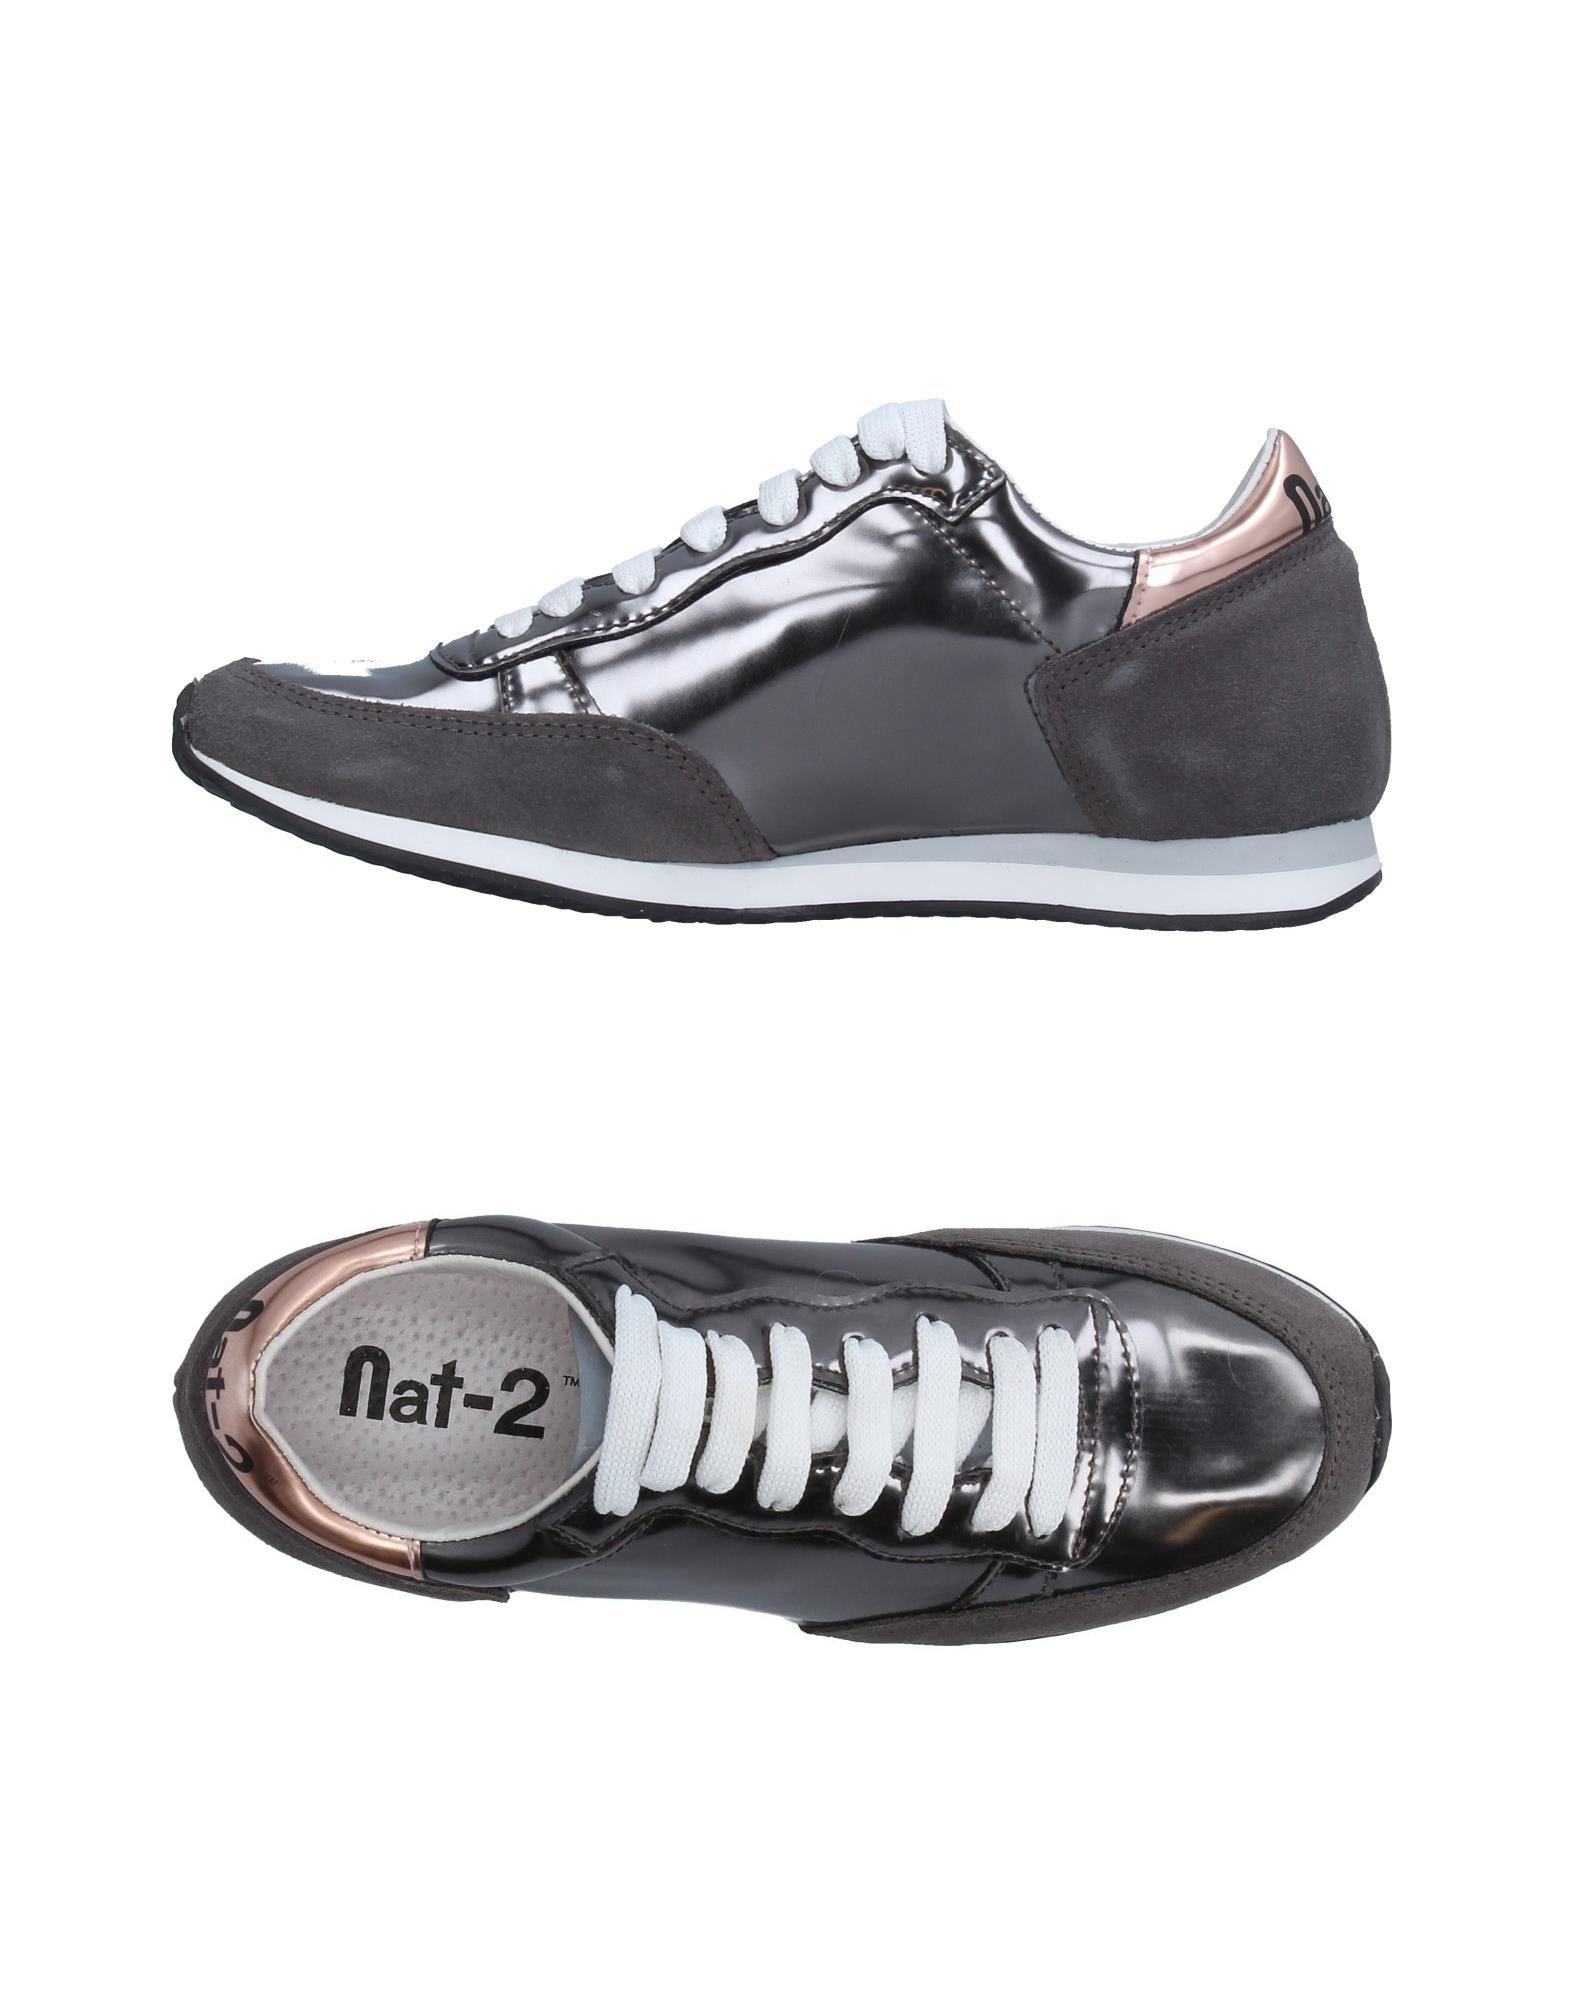 Moda Sneakers Nat-2 Nat-2 Sneakers Donna - 11263269LD a06f66